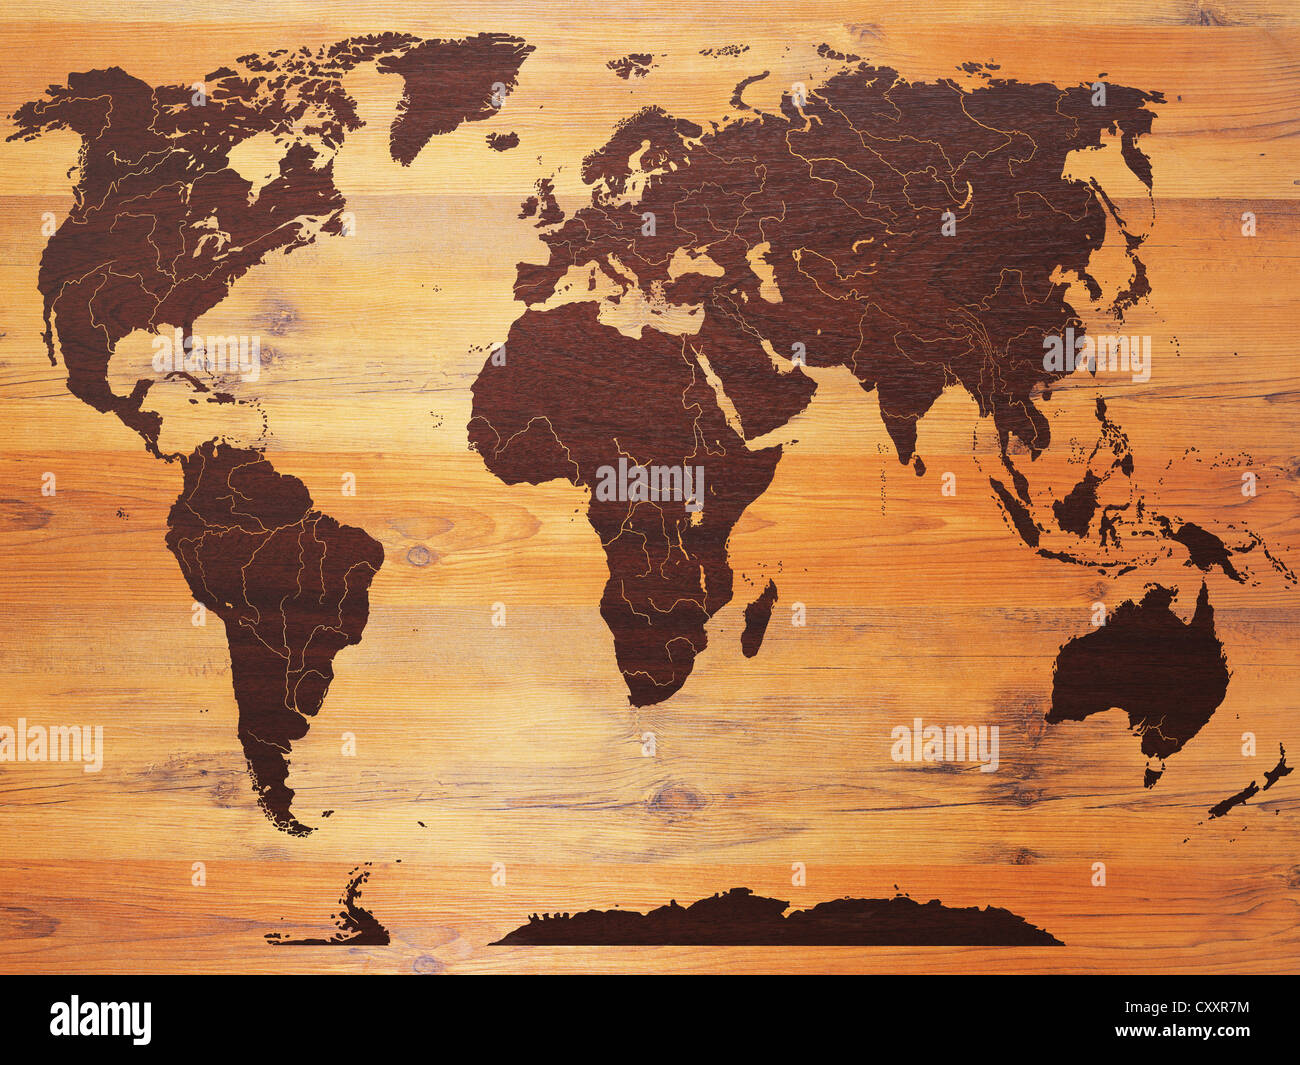 carte du monde sur bois banque d 39 images photo stock 50990792 alamy. Black Bedroom Furniture Sets. Home Design Ideas